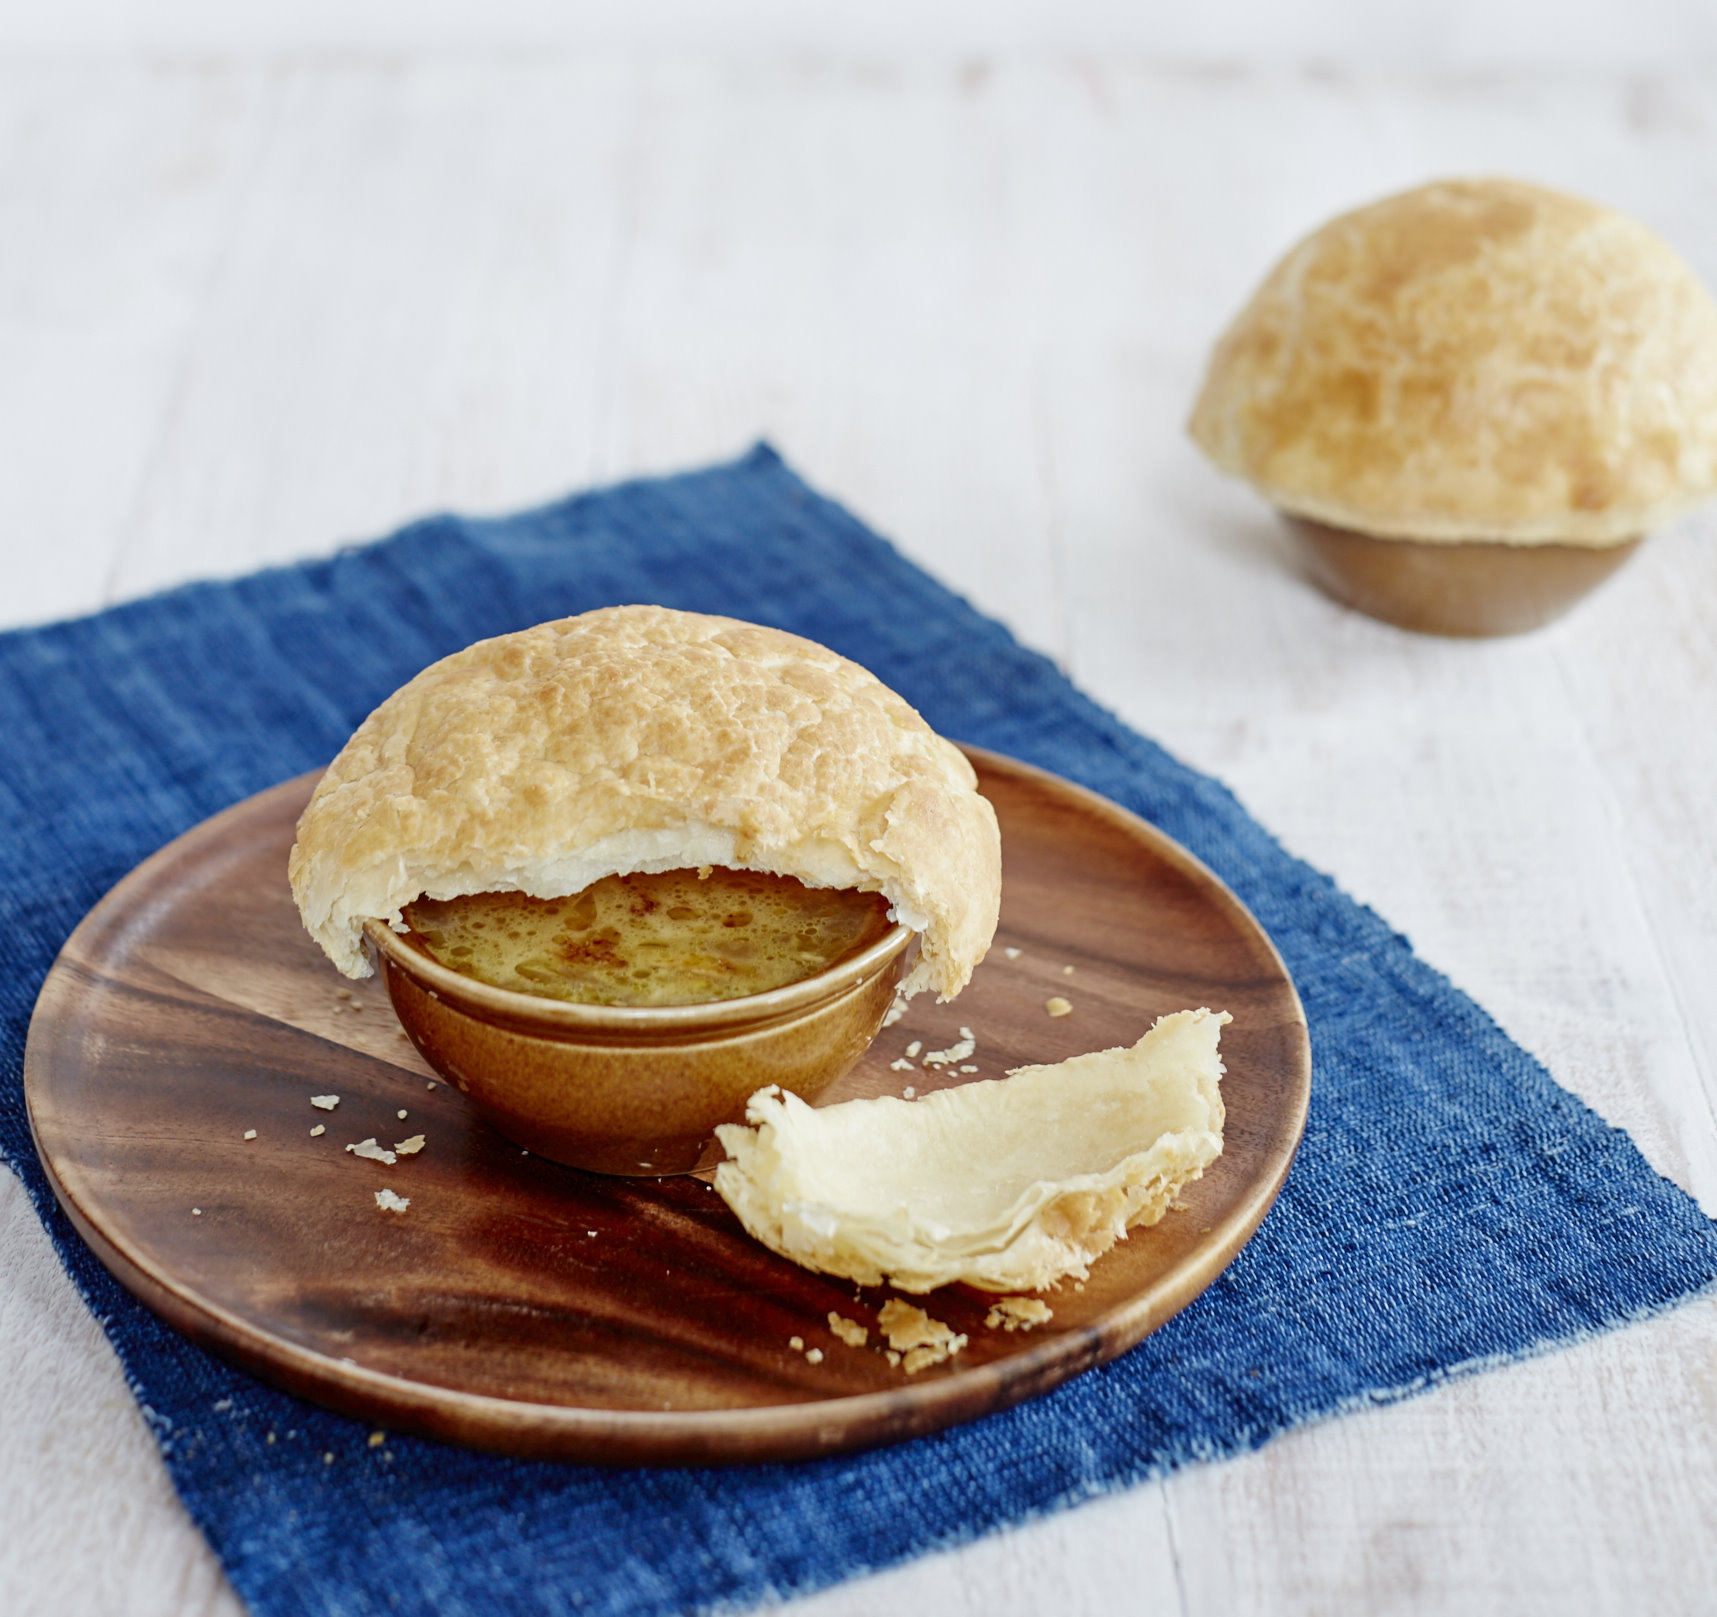 Signature Baked Onion Soup (Signature Baked Onion Puff Soup)